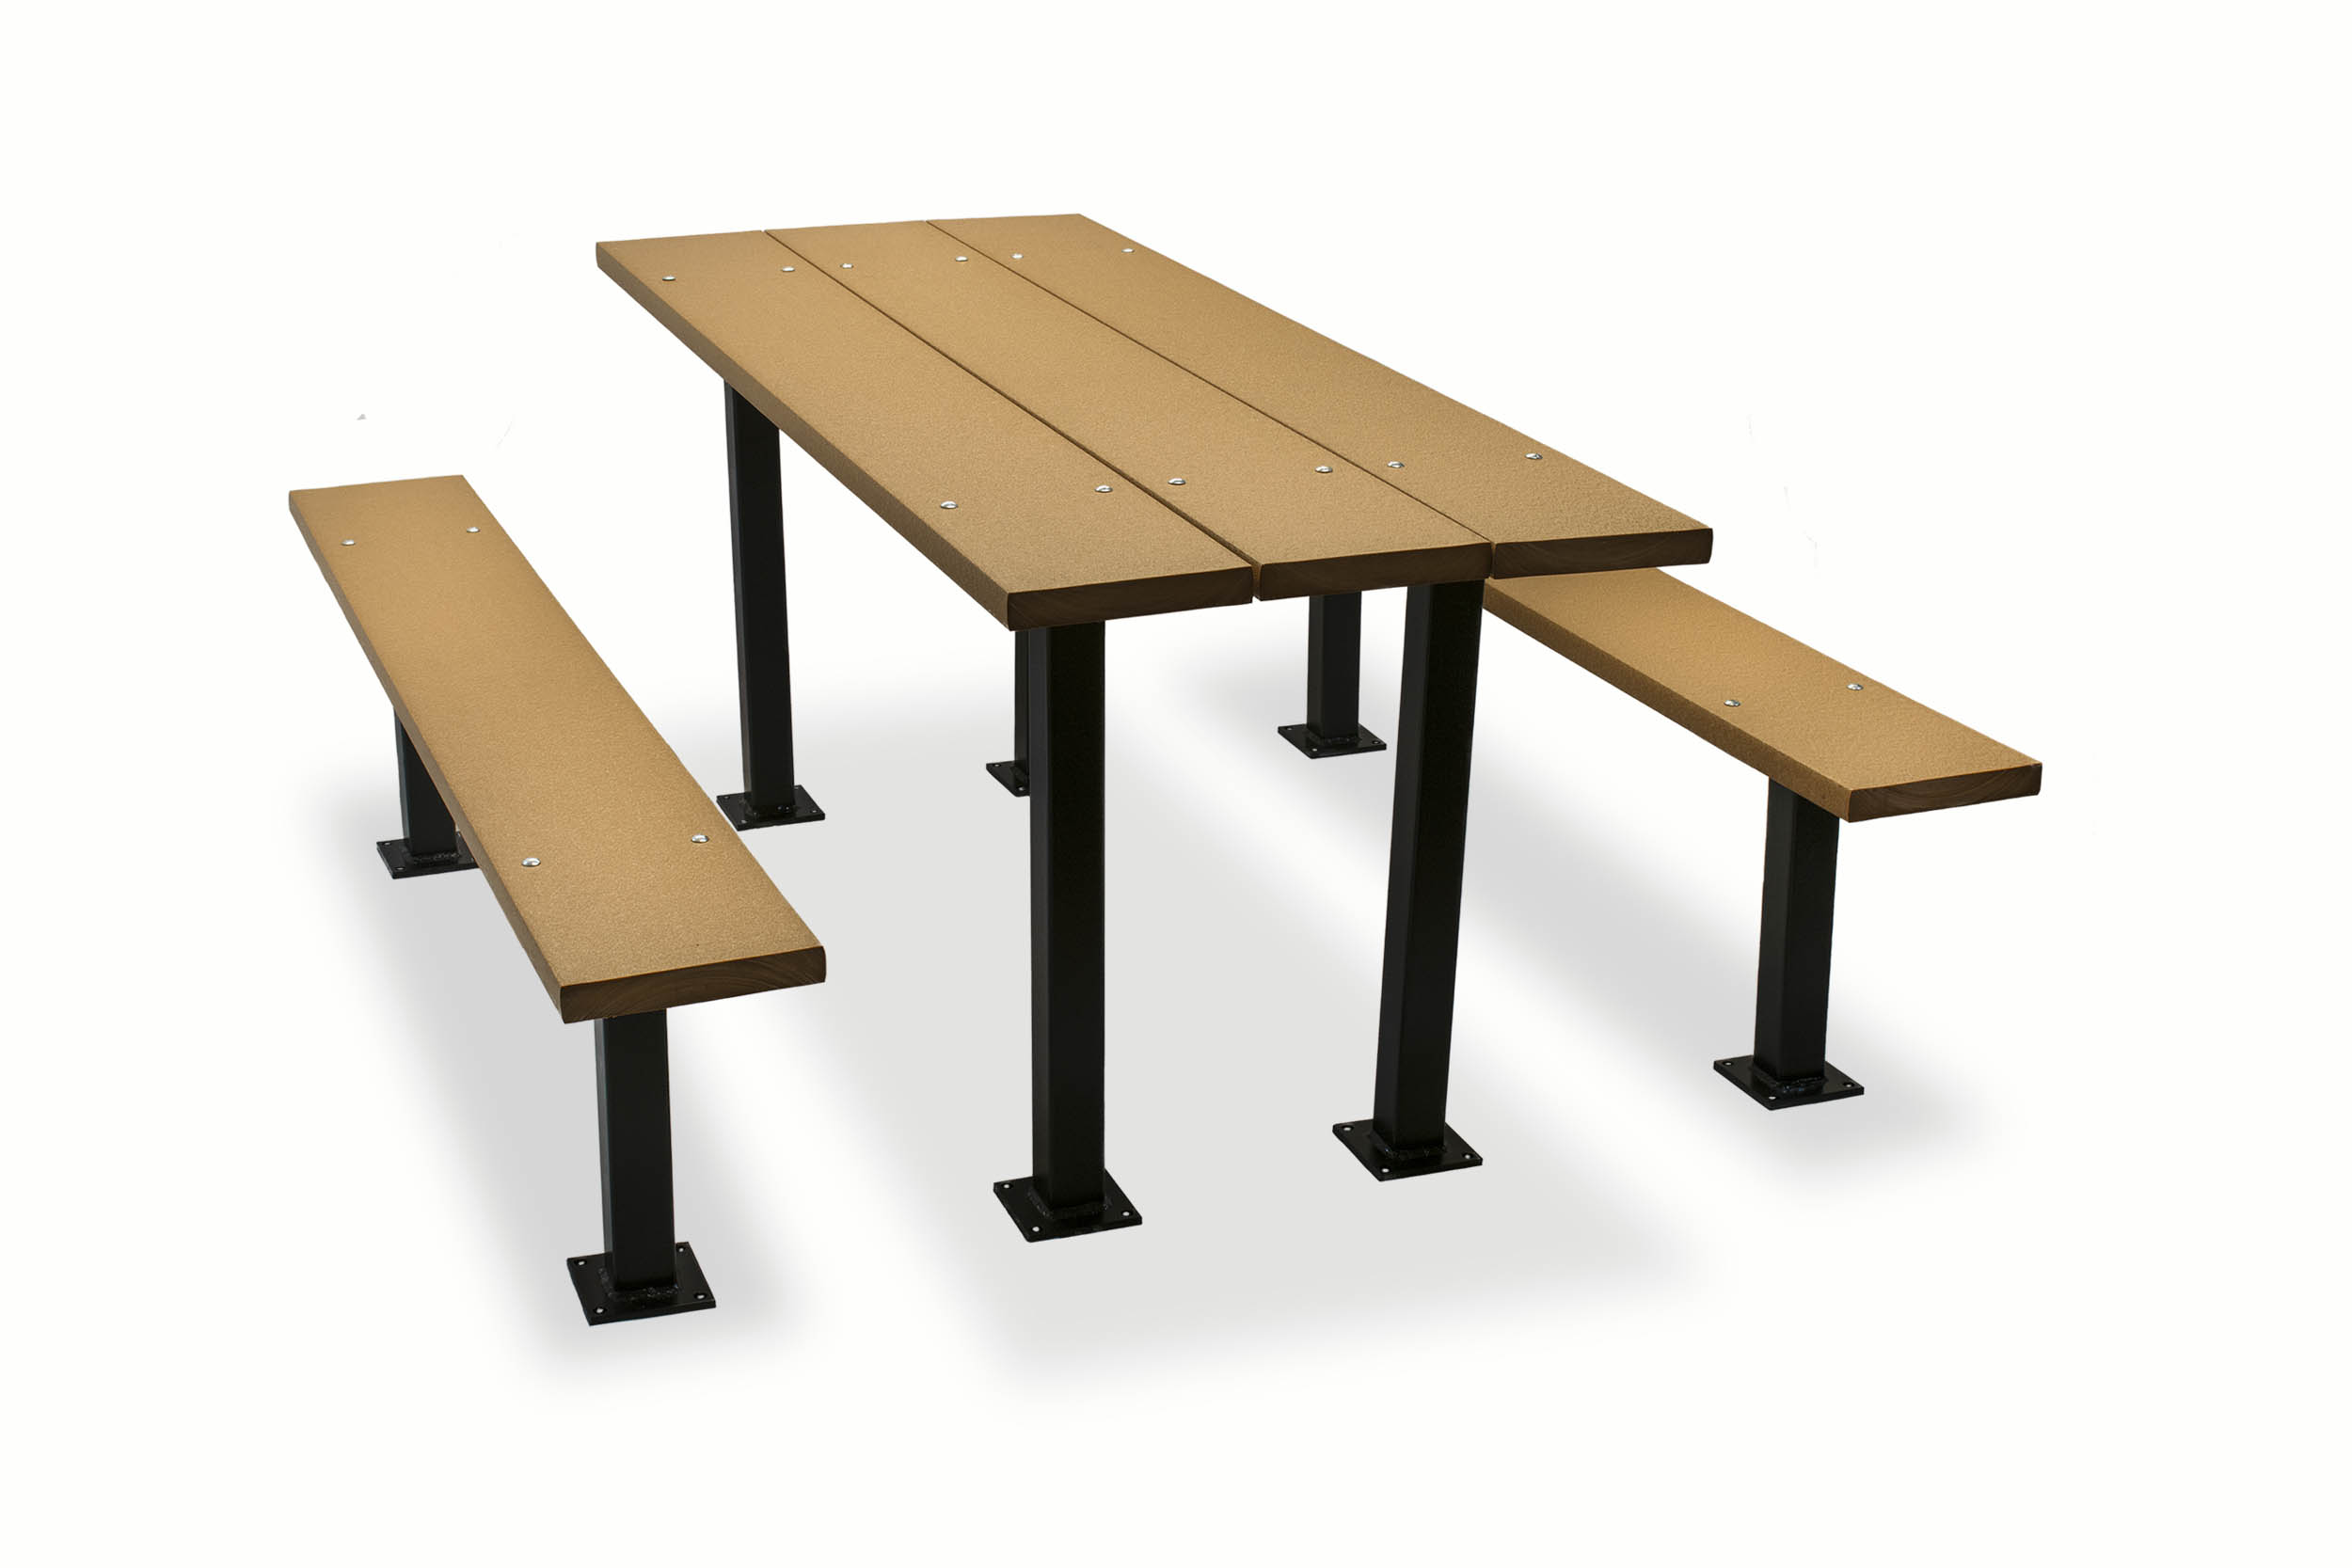 Peachy Advantage Outdoor Products Commercial Site Furnishings 6 Cambridge Recycled Plastic Picnic Table Interior Design Ideas Clesiryabchikinfo